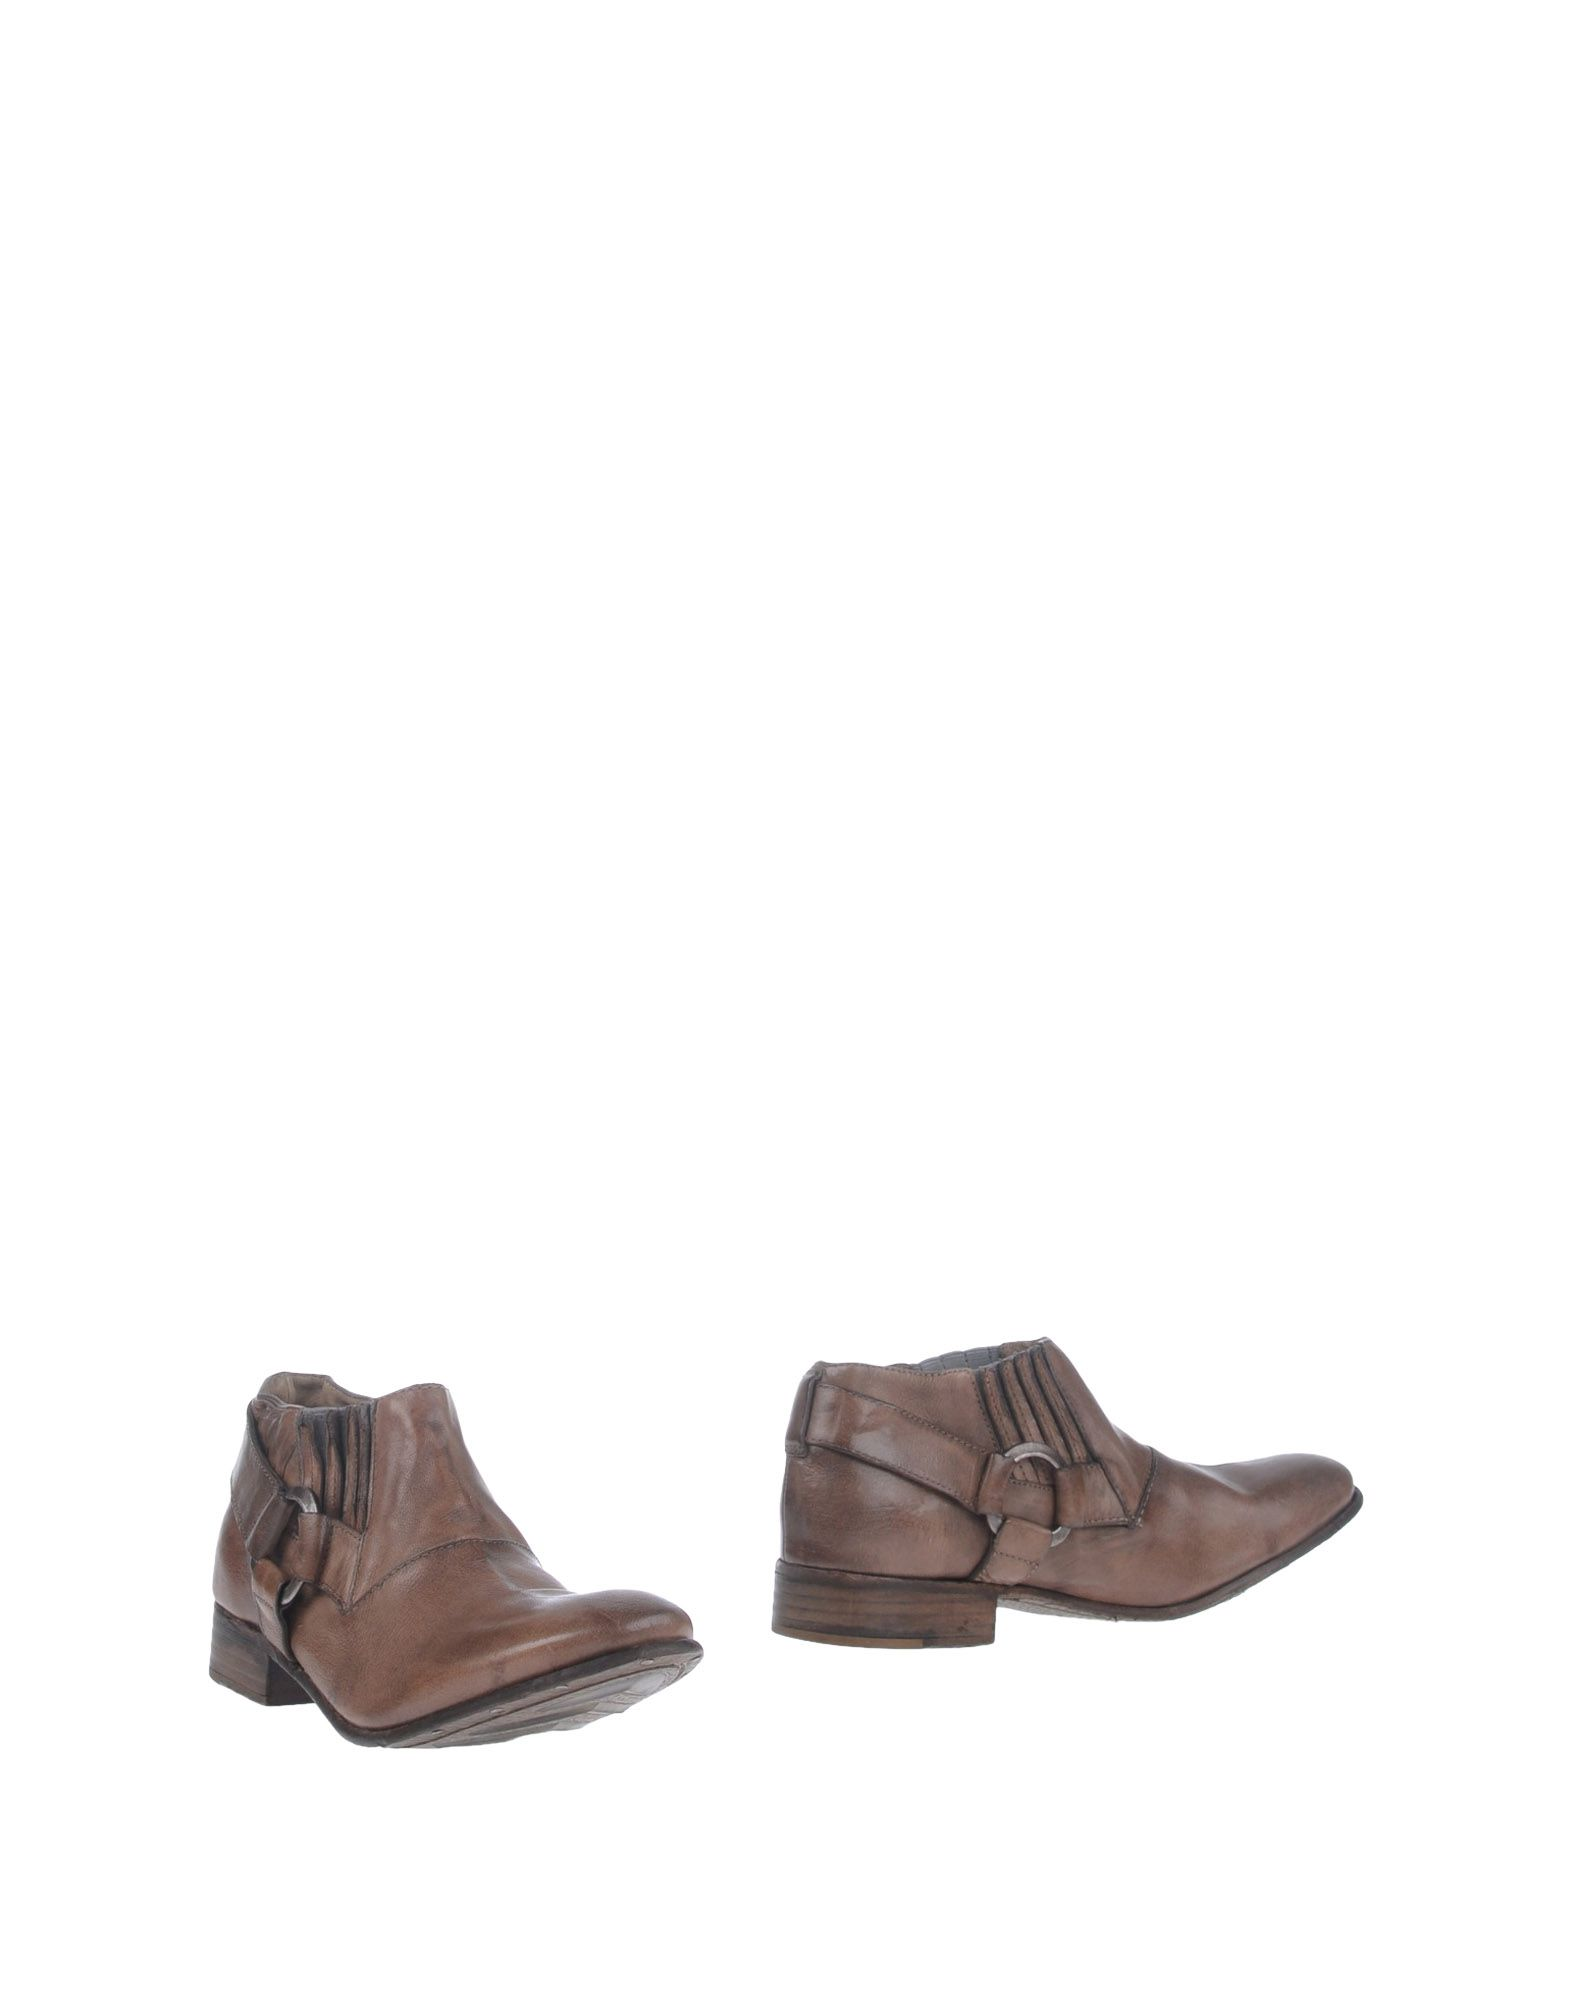 NYLO Ankle Boot in Camel